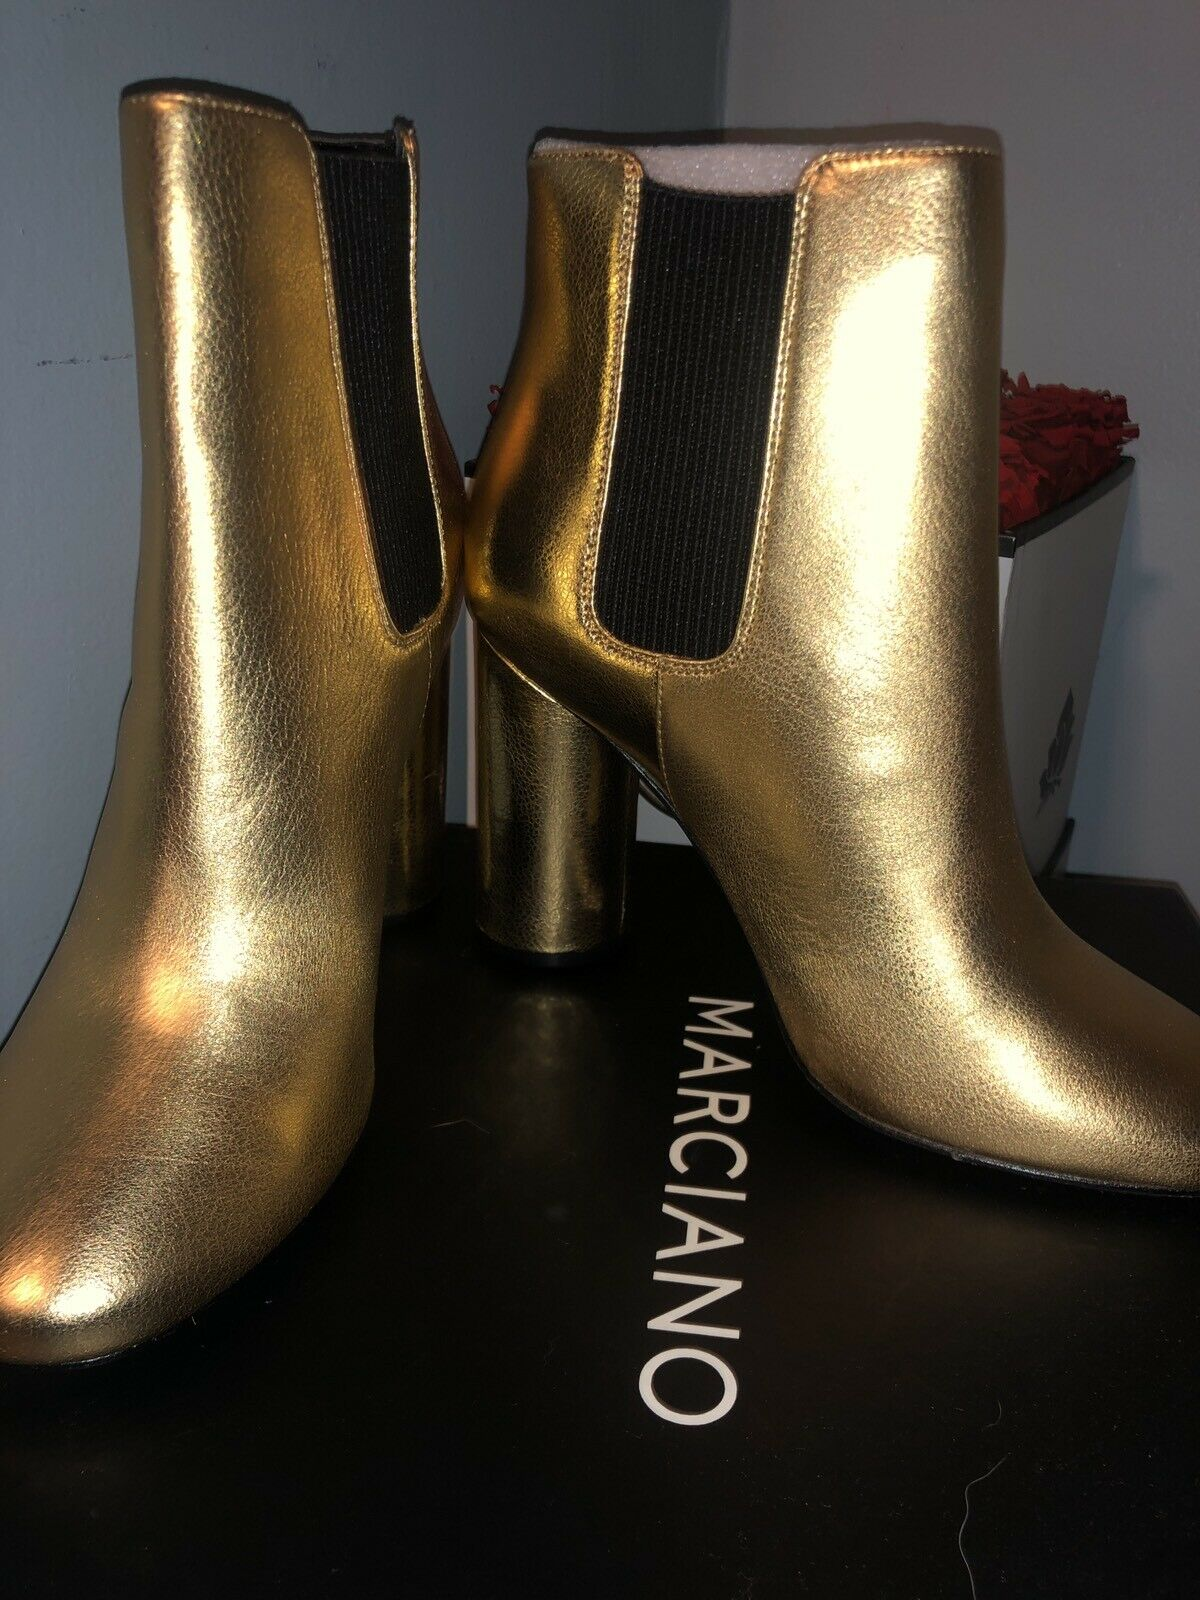 Guess By Marciano Women's Eilana Eilana Eilana Leather Booties In gold Metallic Size 6 49d897